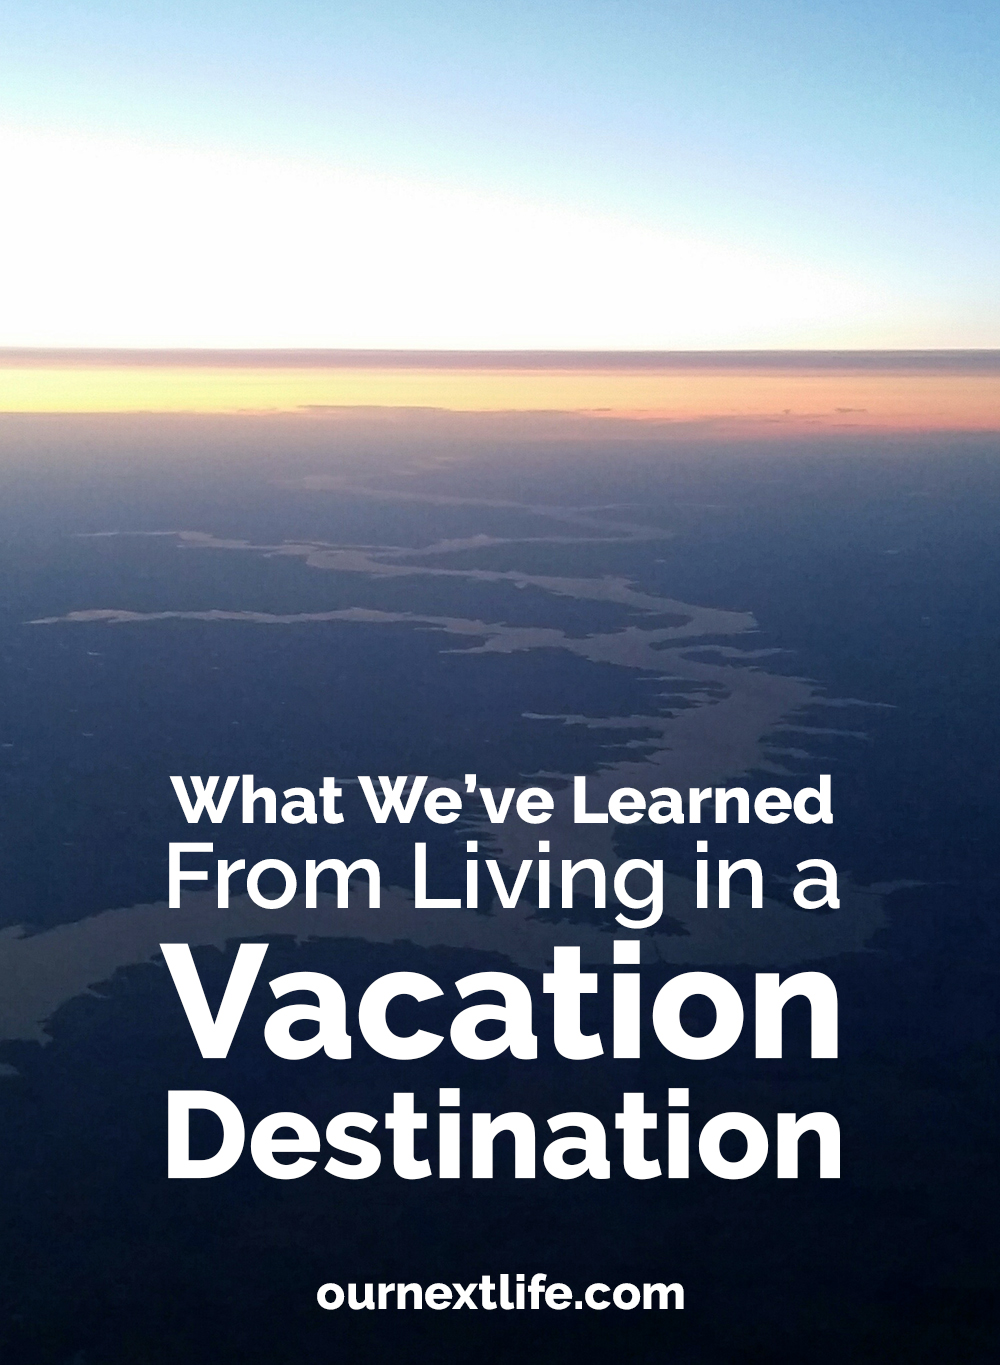 vacation-destination